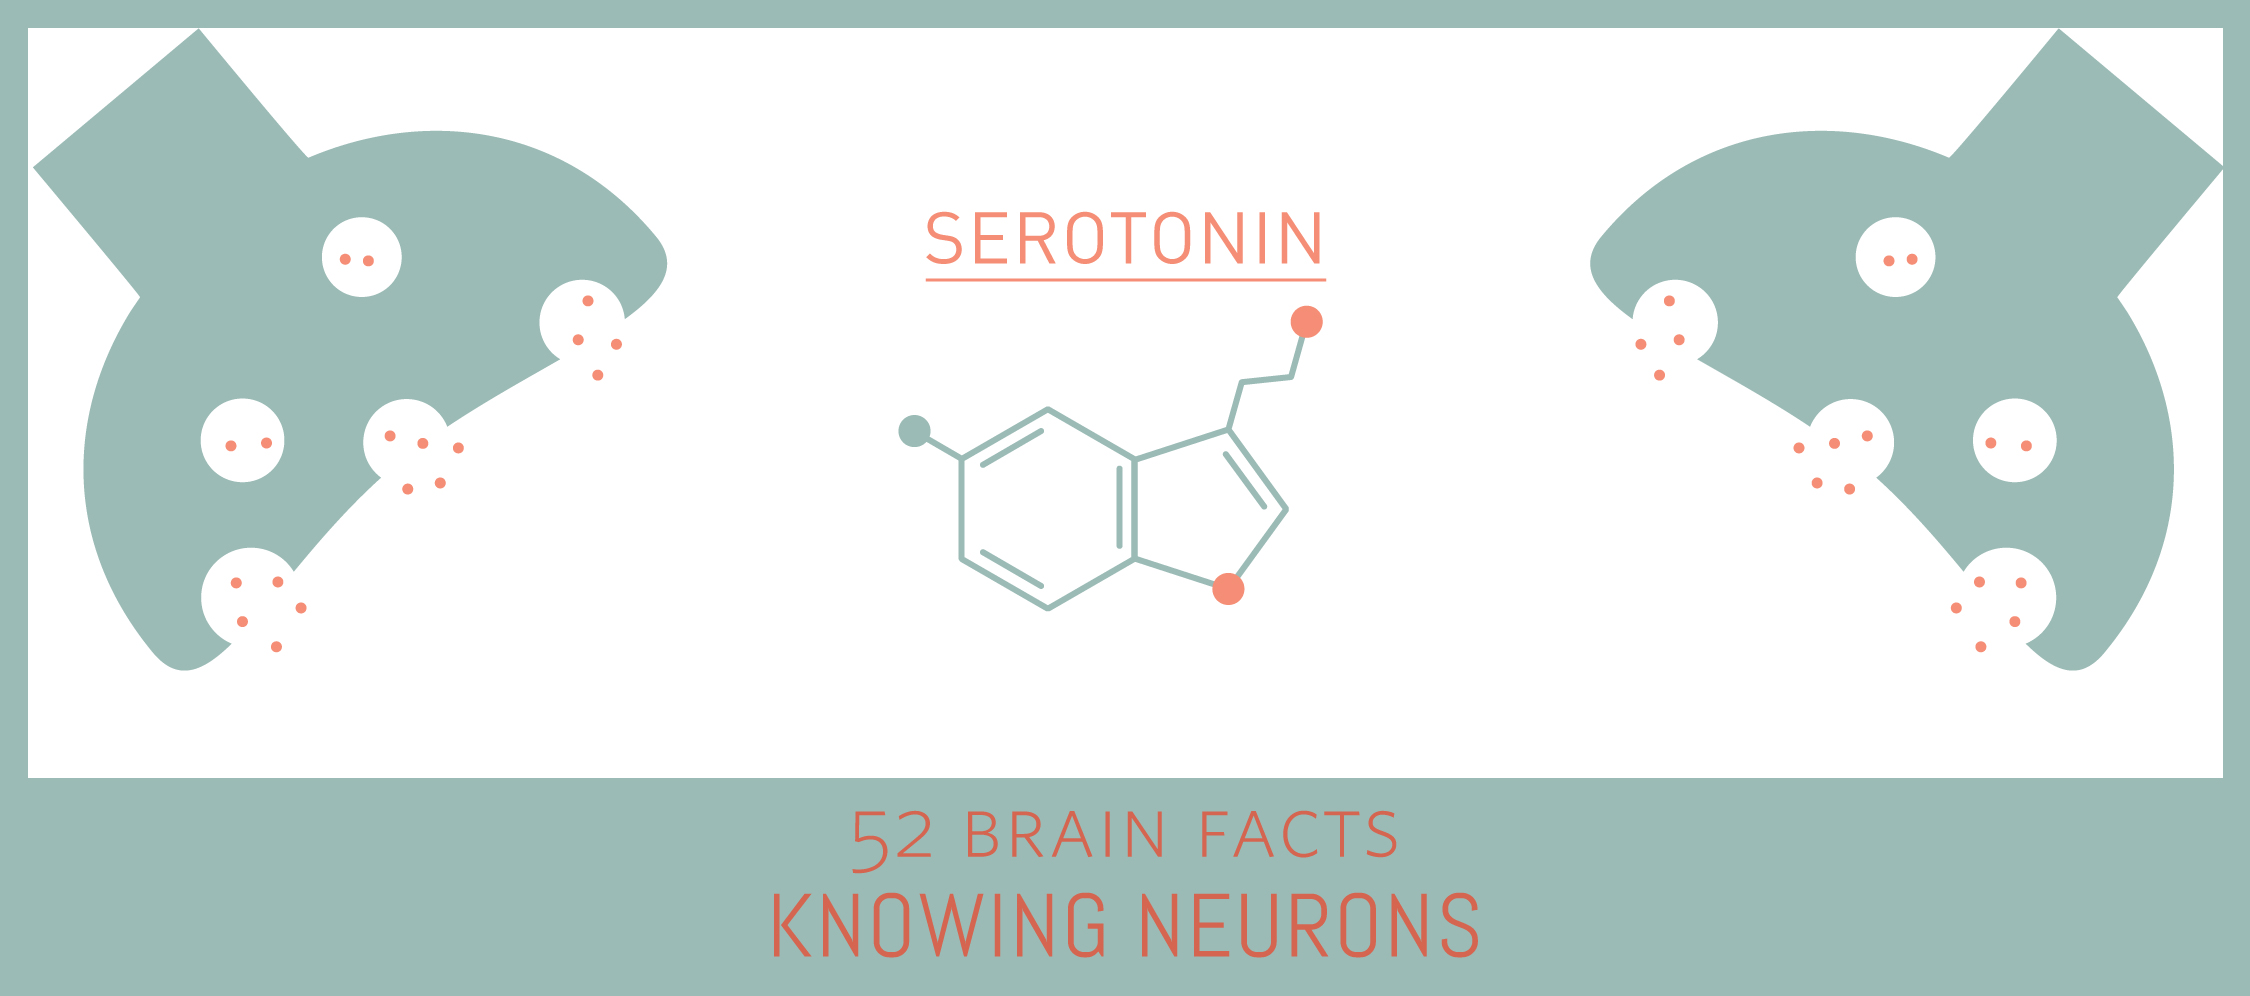 Myth or Fact? The neurotransmitter serotonin is solely located in the brain.